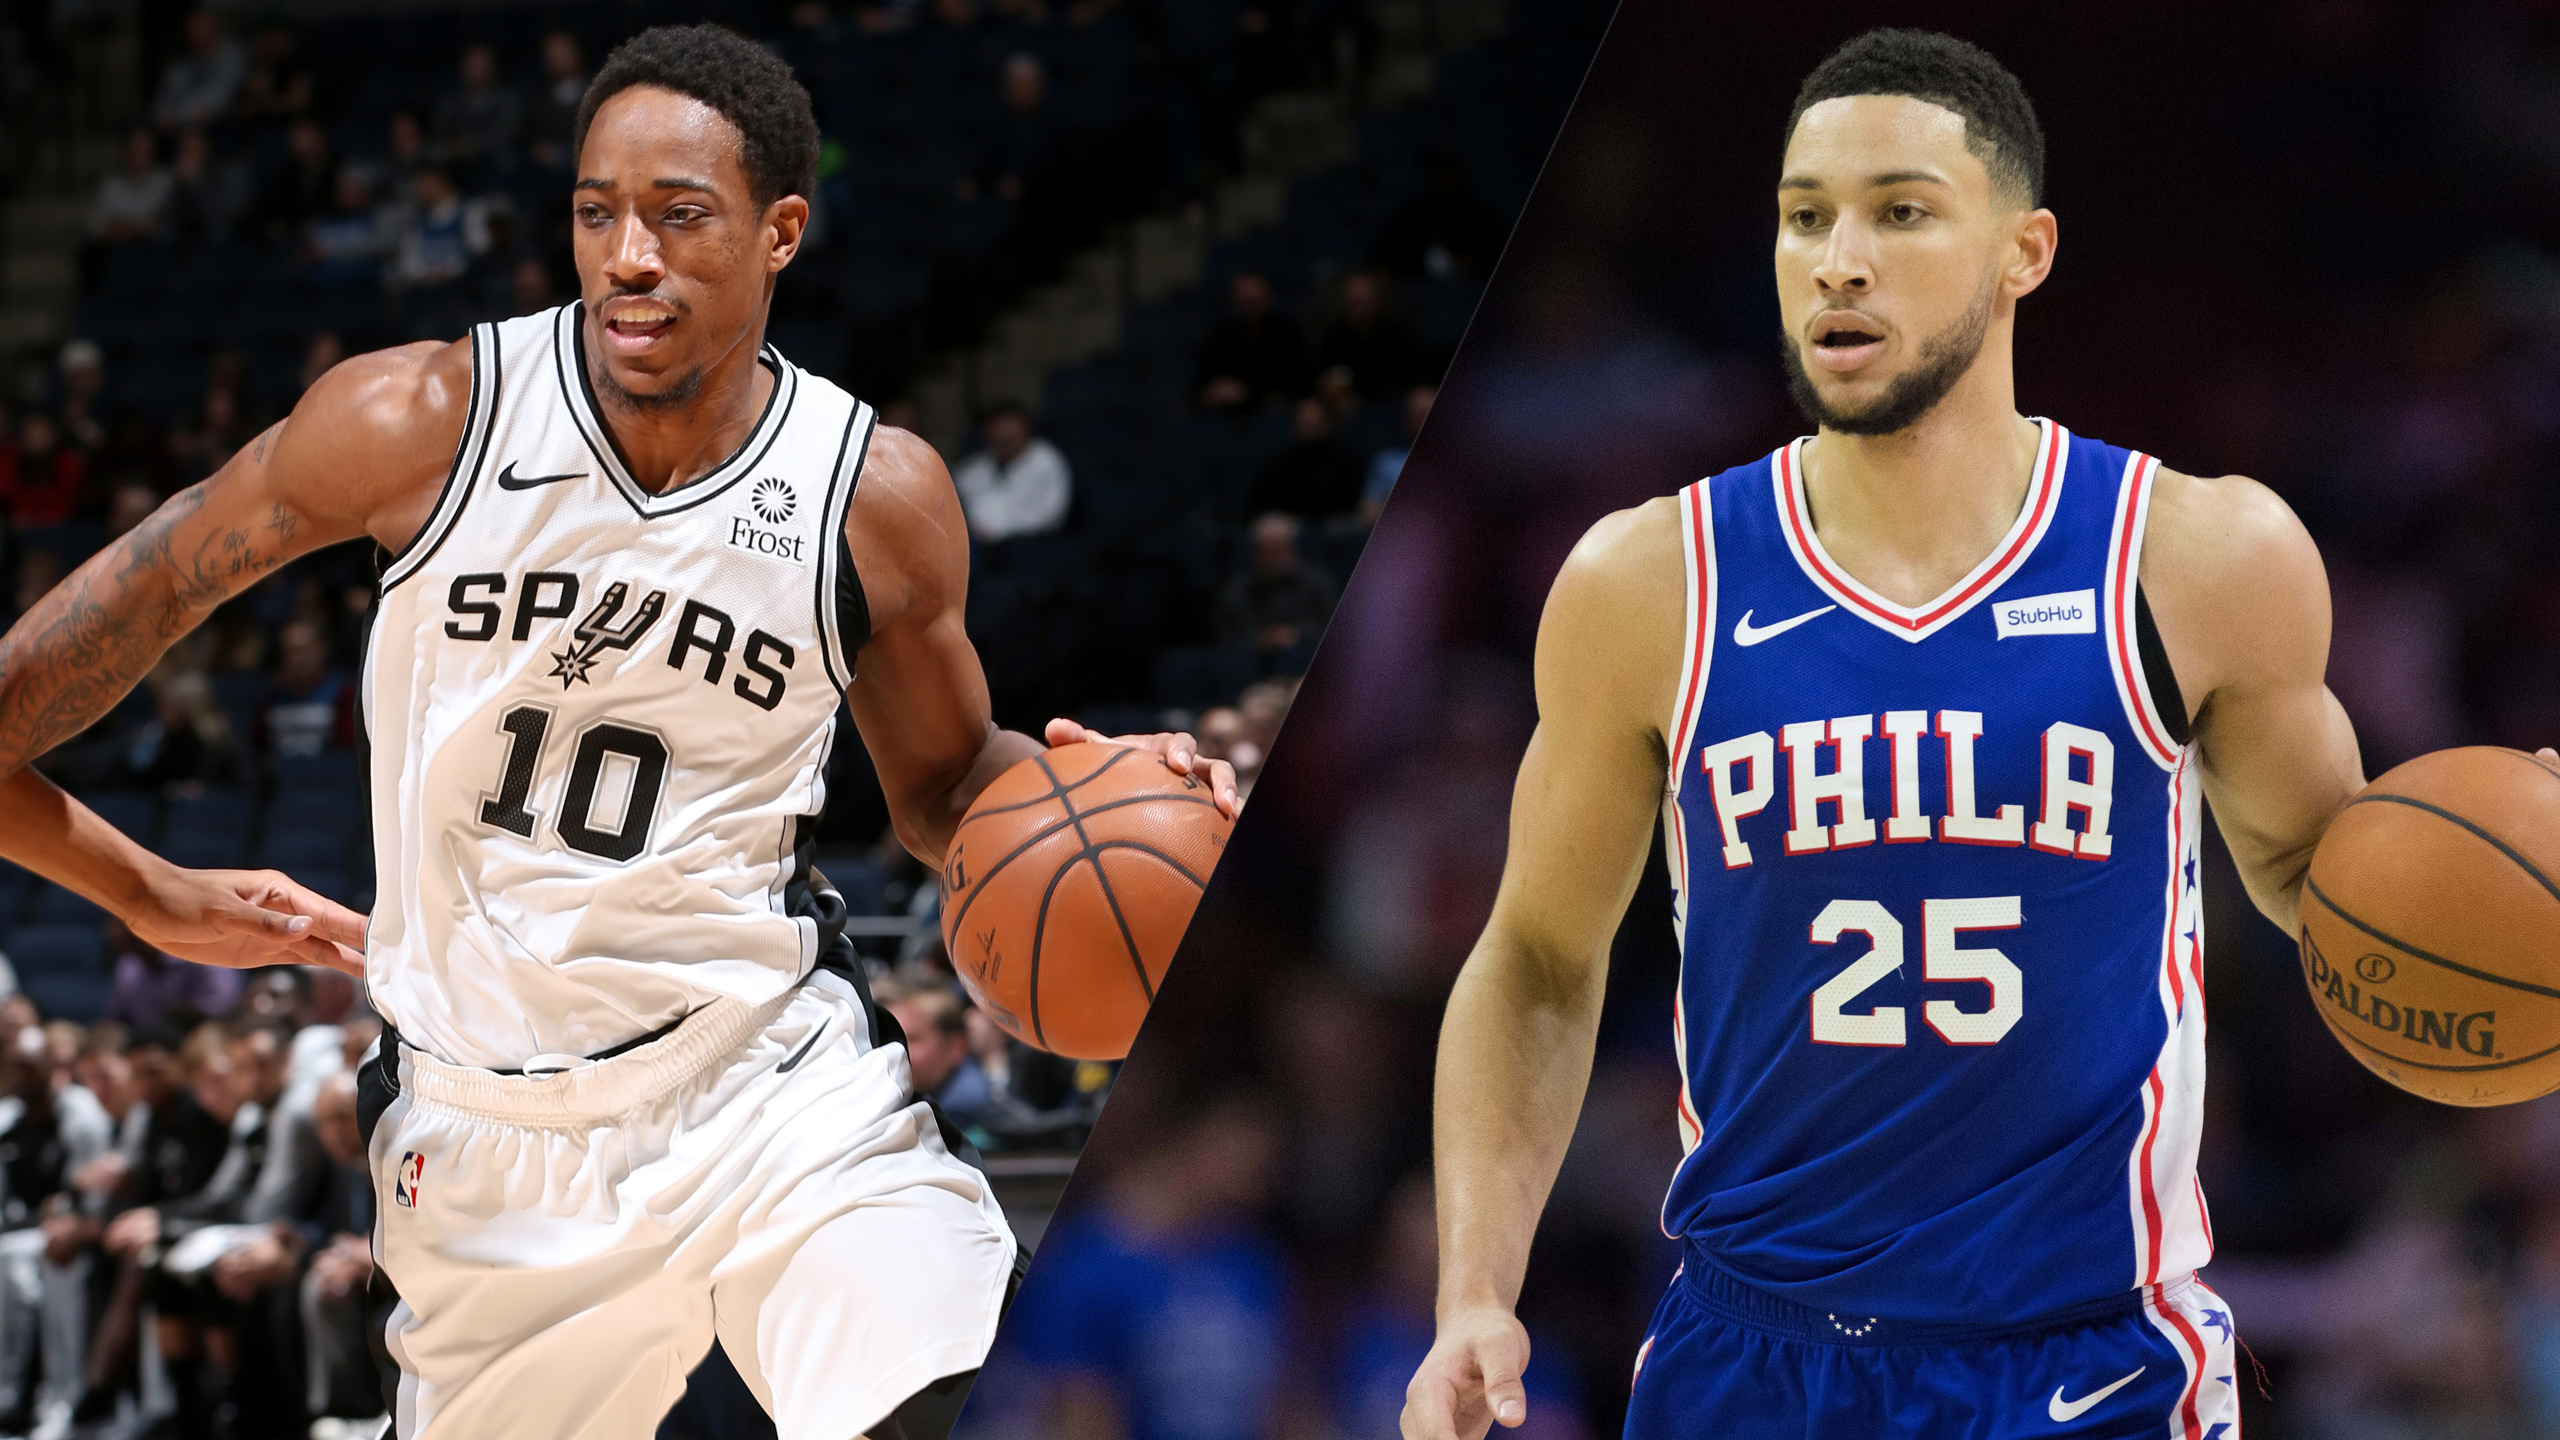 In Spanish - San Antonio Spurs vs. Philadelphia 76ers